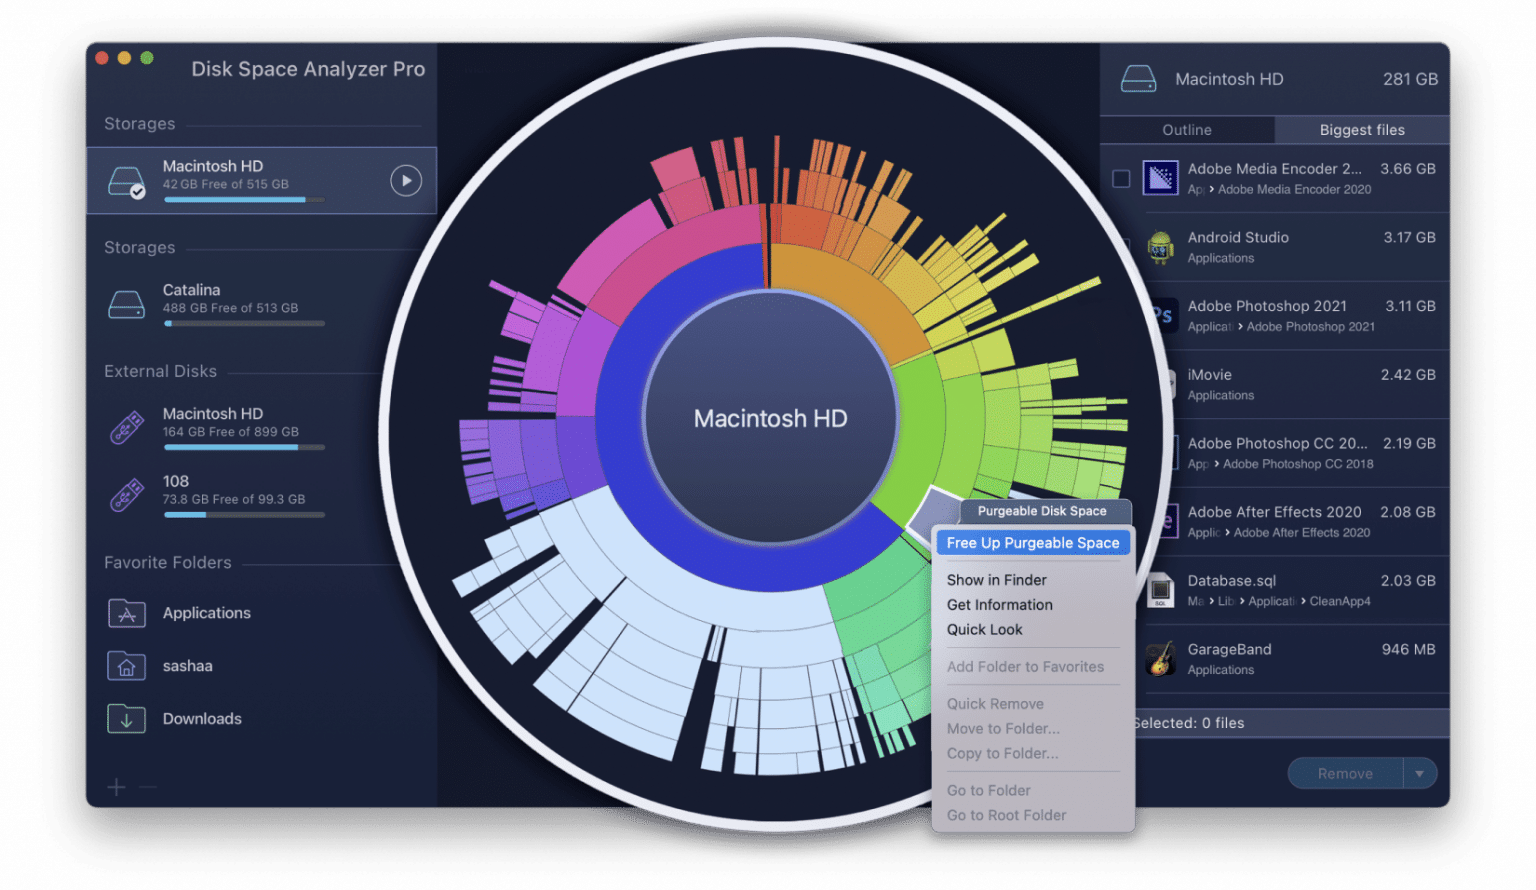 Free up purgeable space command in Disk Space Analyzer